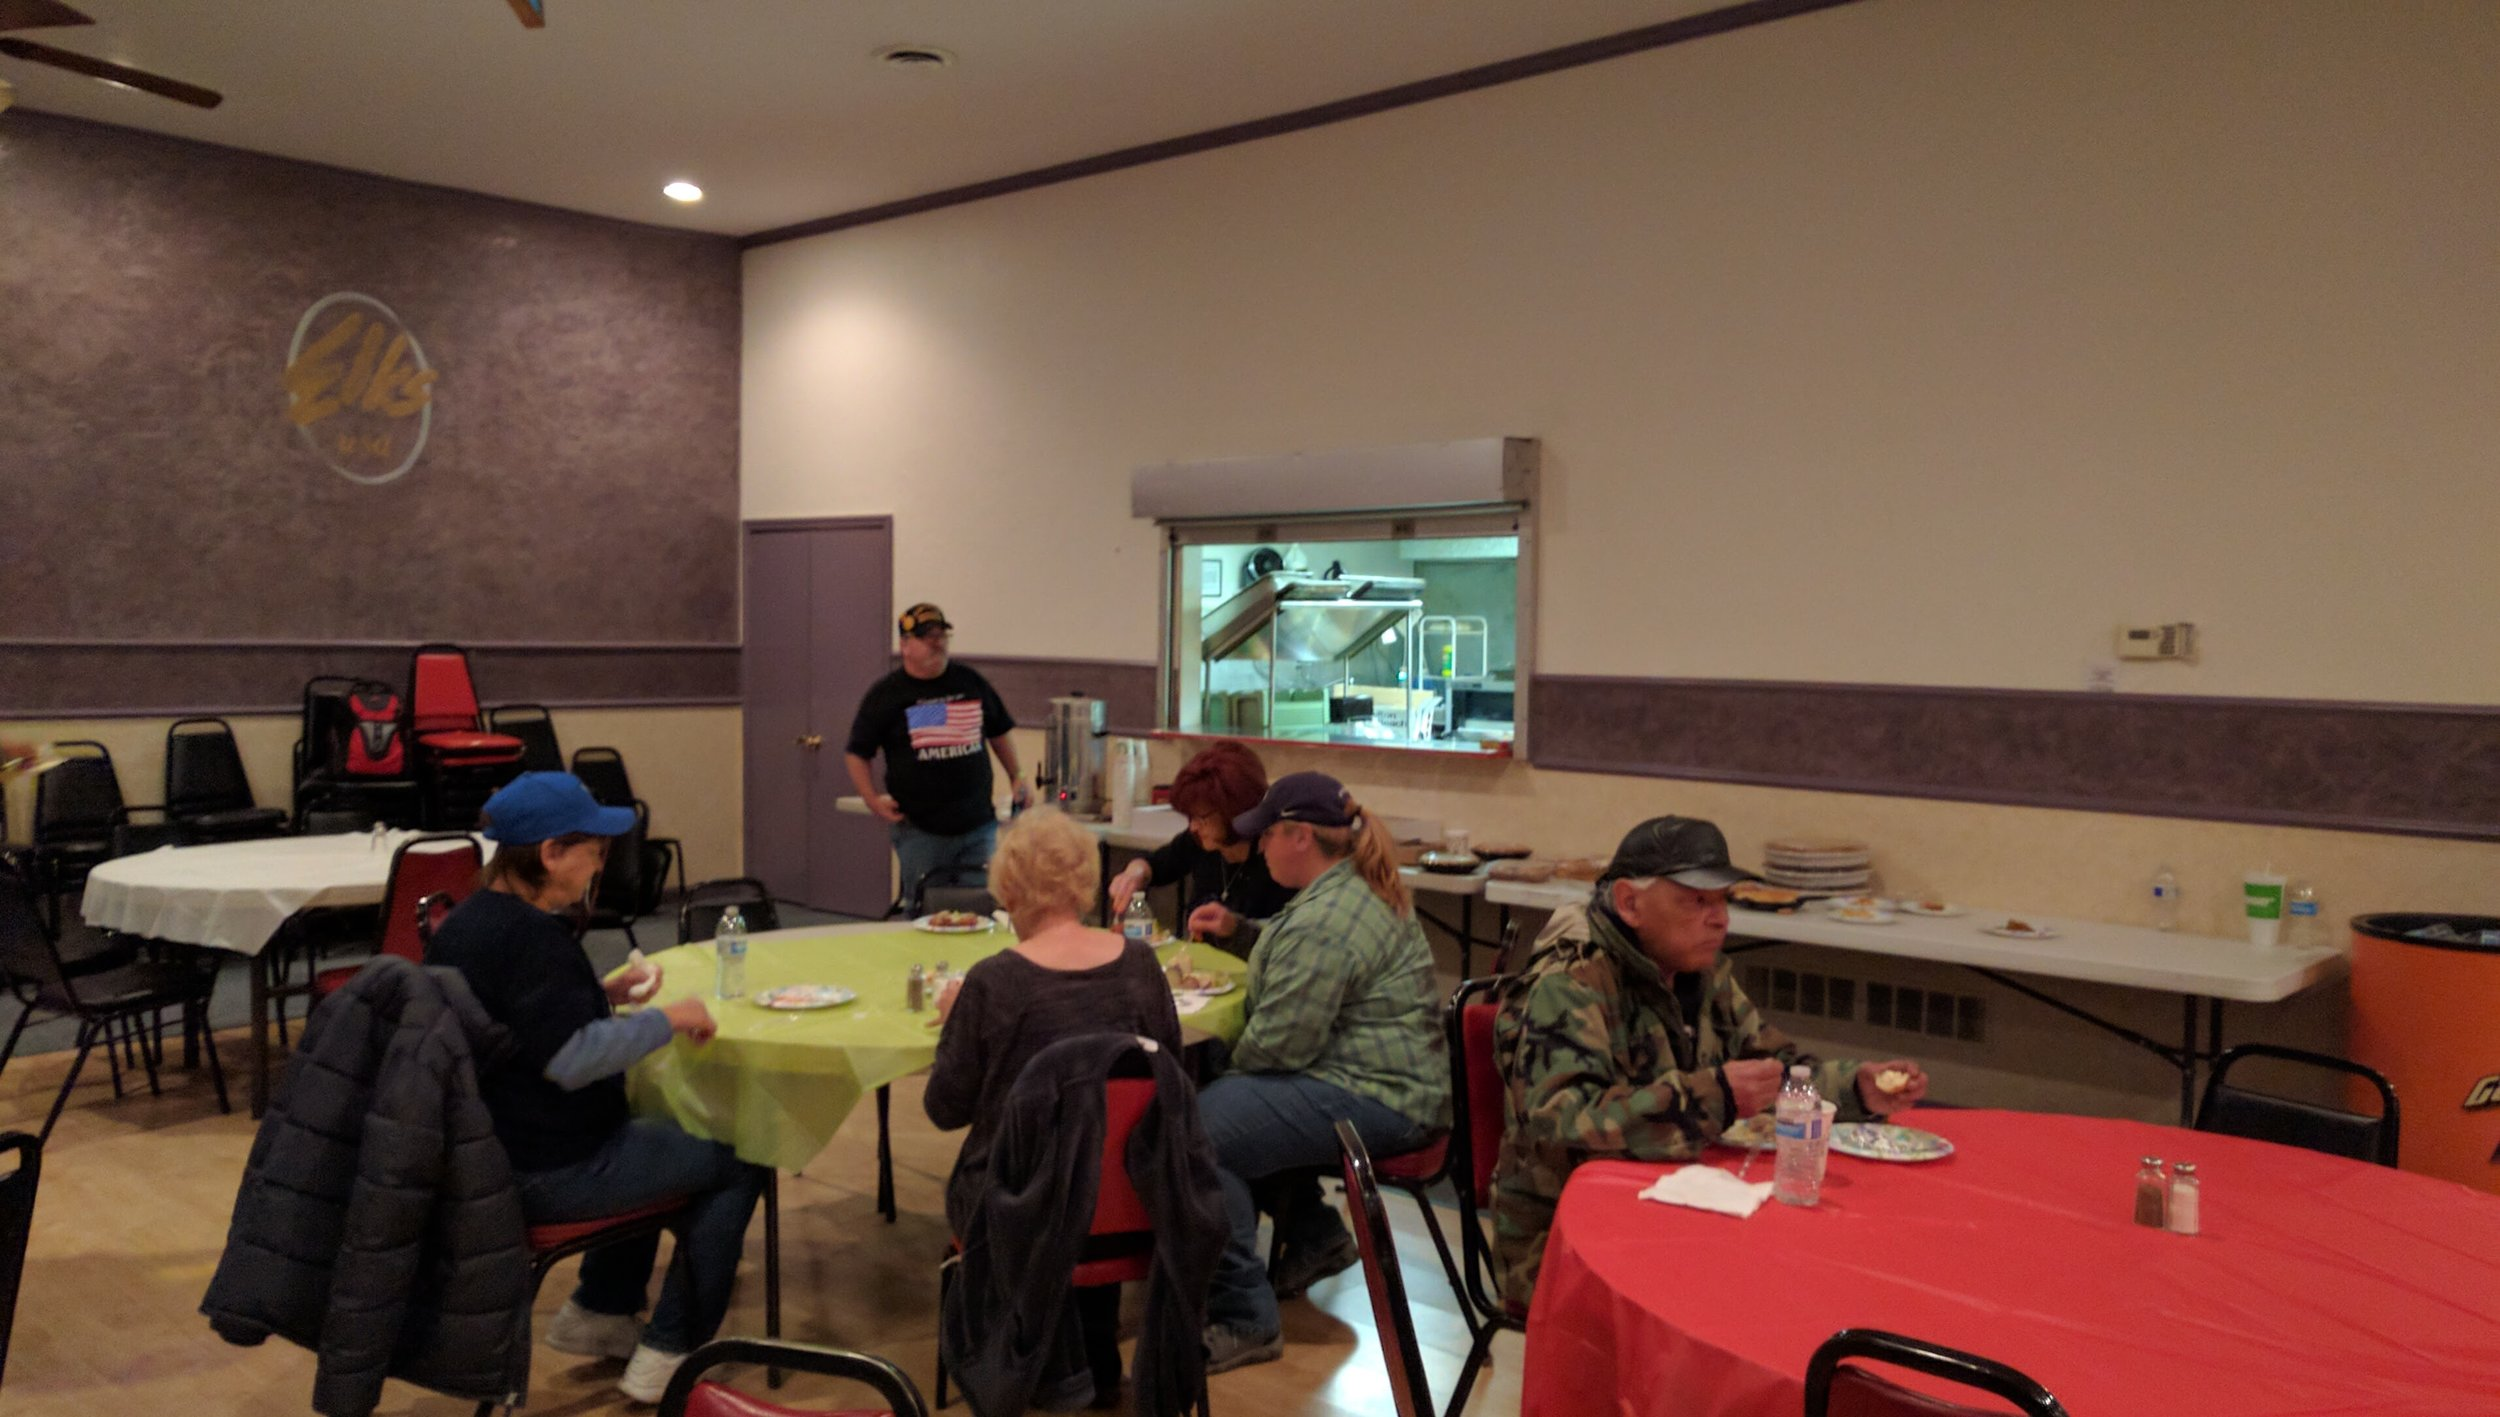 Bob Mello, wearing the Stars and Stripes shirt organized the benefit meal with his wife, as part of their efforts to help Veterans facing difficulties.